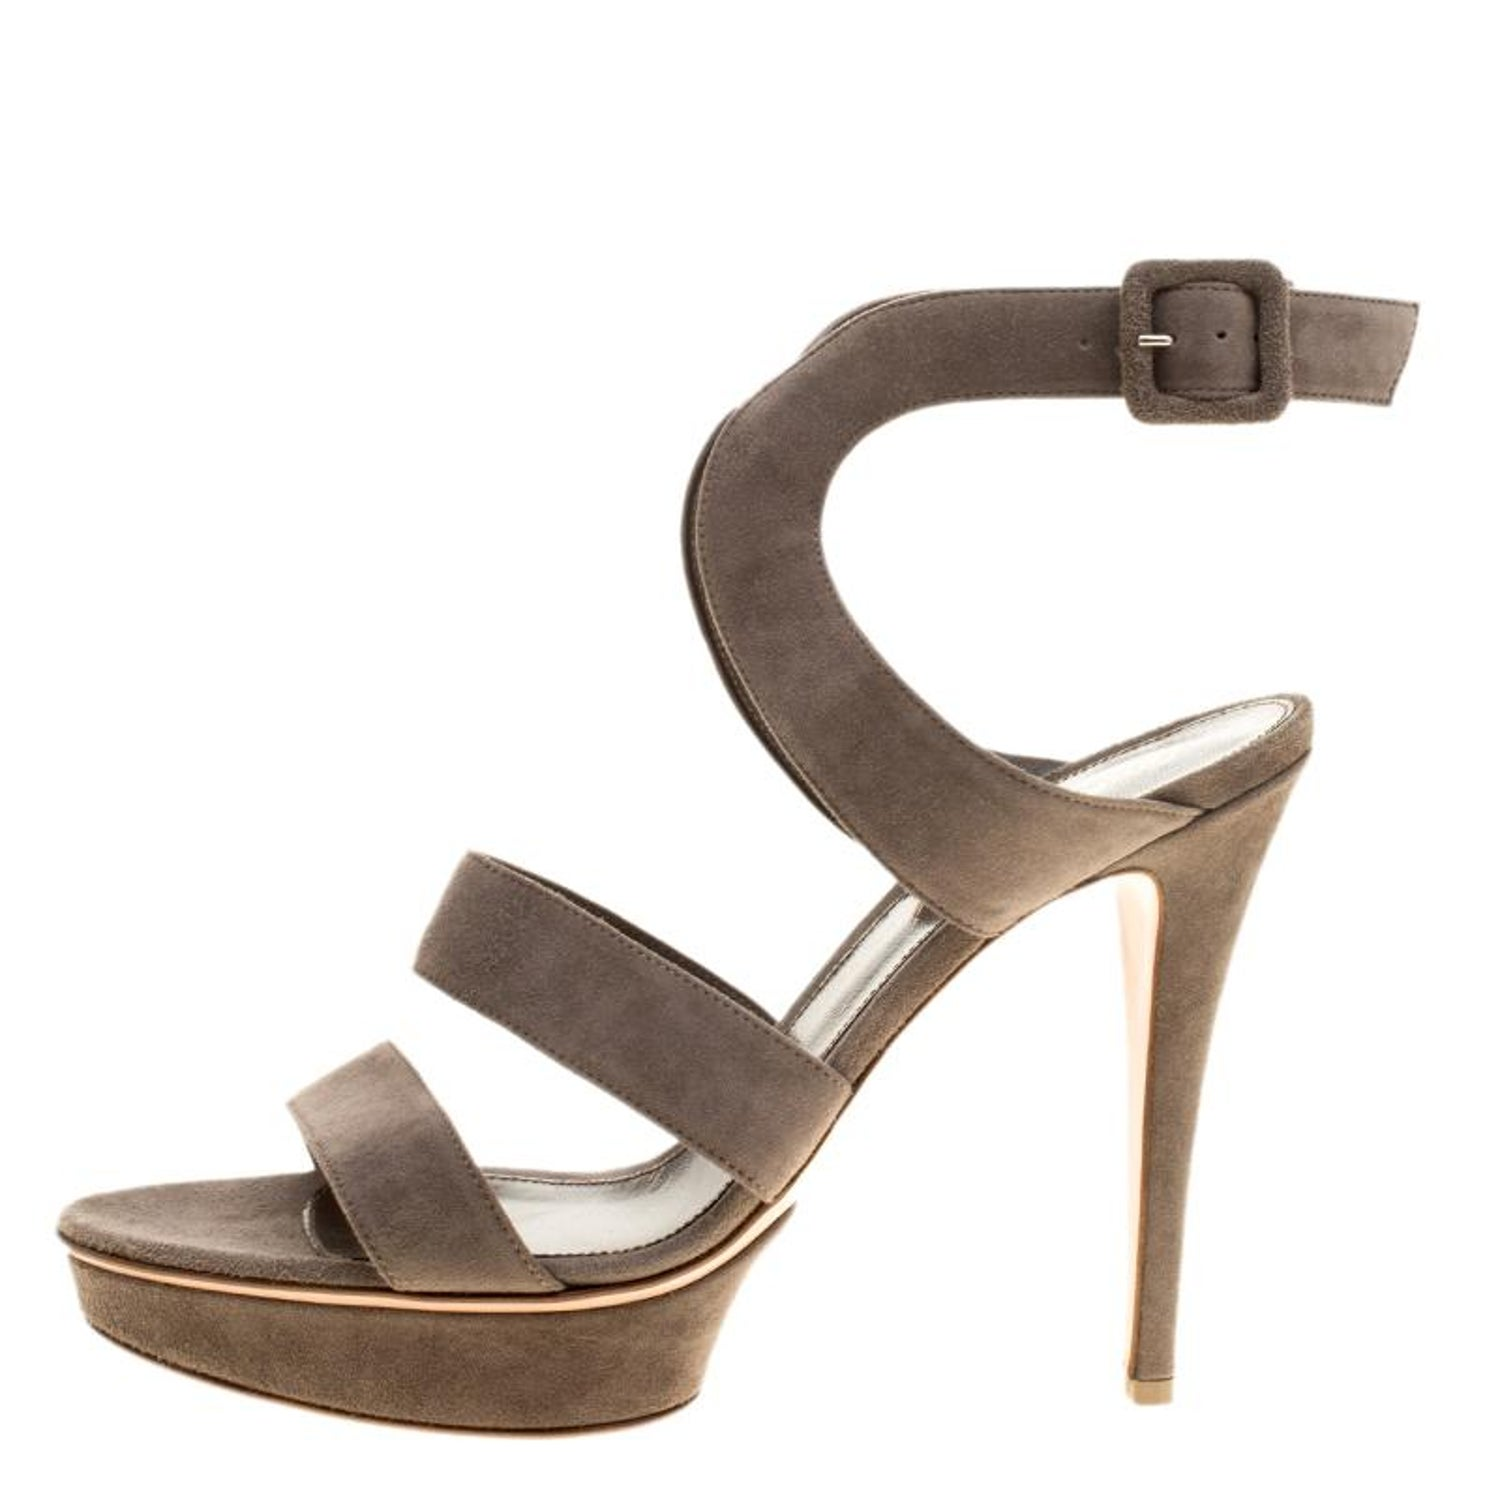 6a6cd3d6001 Gianvito Rossi Grey Suede Platform Sandals Size 40 For Sale at 1stdibs